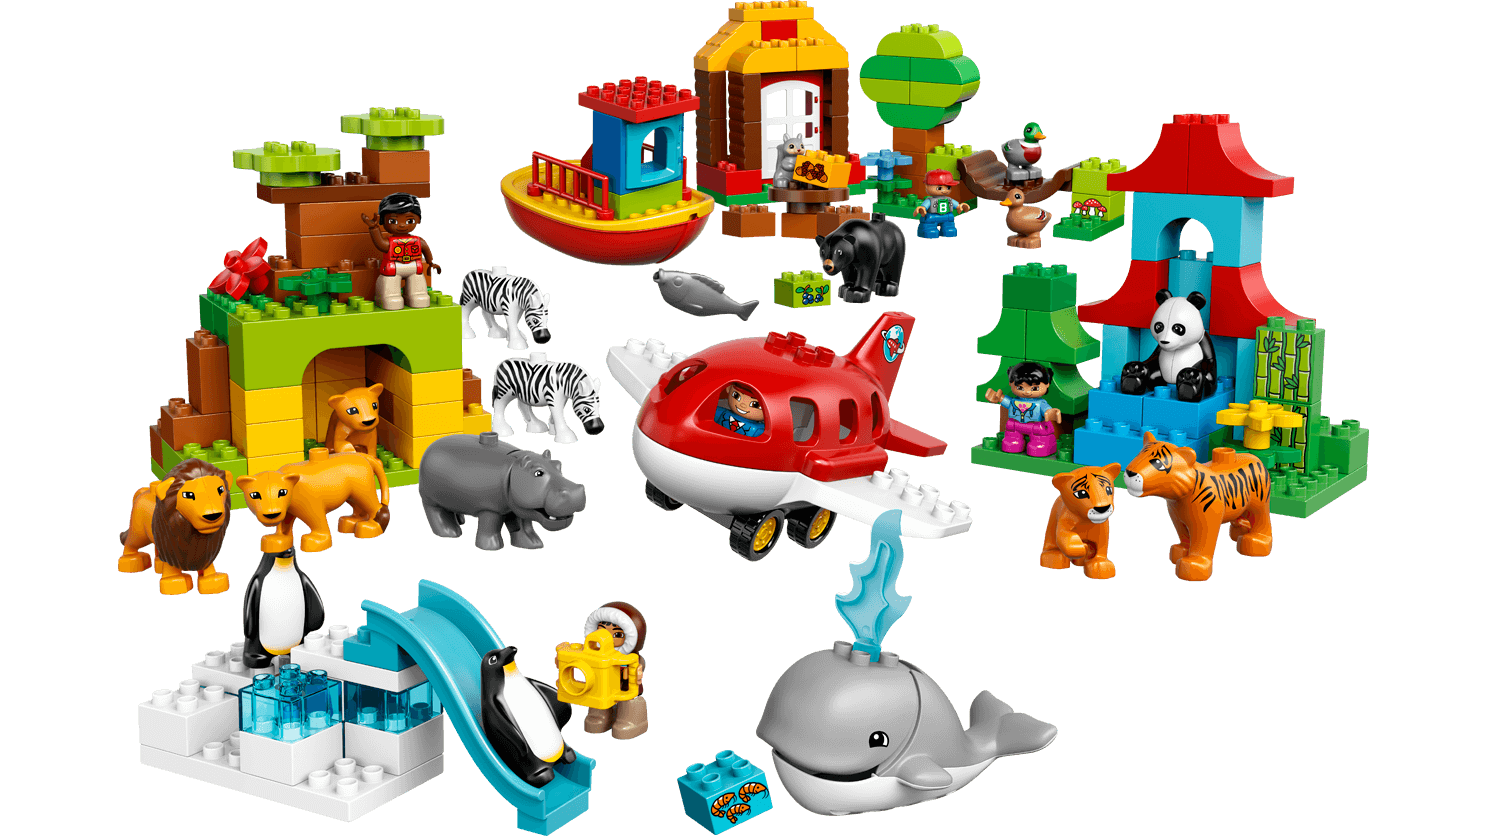 Lego worlds logo clipart graphic 10805 Around the World - Products - DUPLO LEGO.com graphic